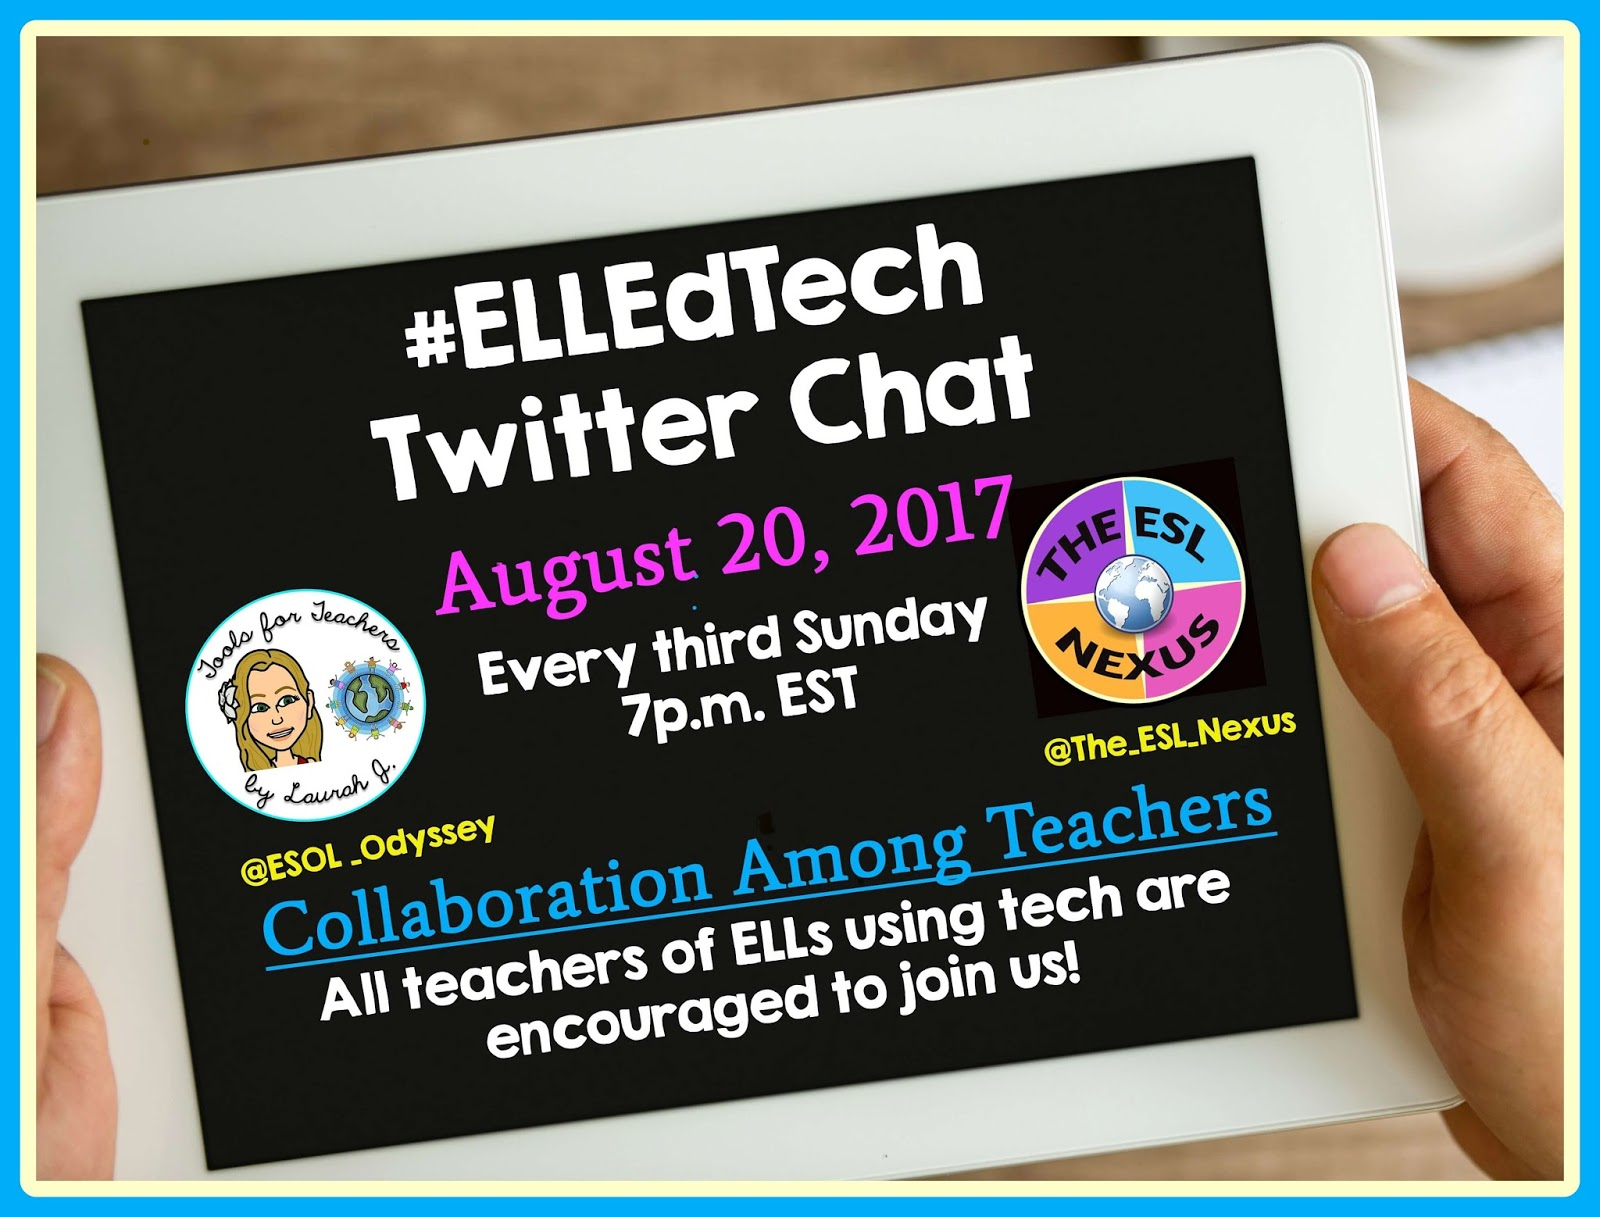 Teamwork among teachers fosters success in students. Join the #ELLEdTech Twitter chat on 8/20/17 for ideas on how to facilitate collaboration between ESL, SPED & mainstream teachers | The ESL Nexus